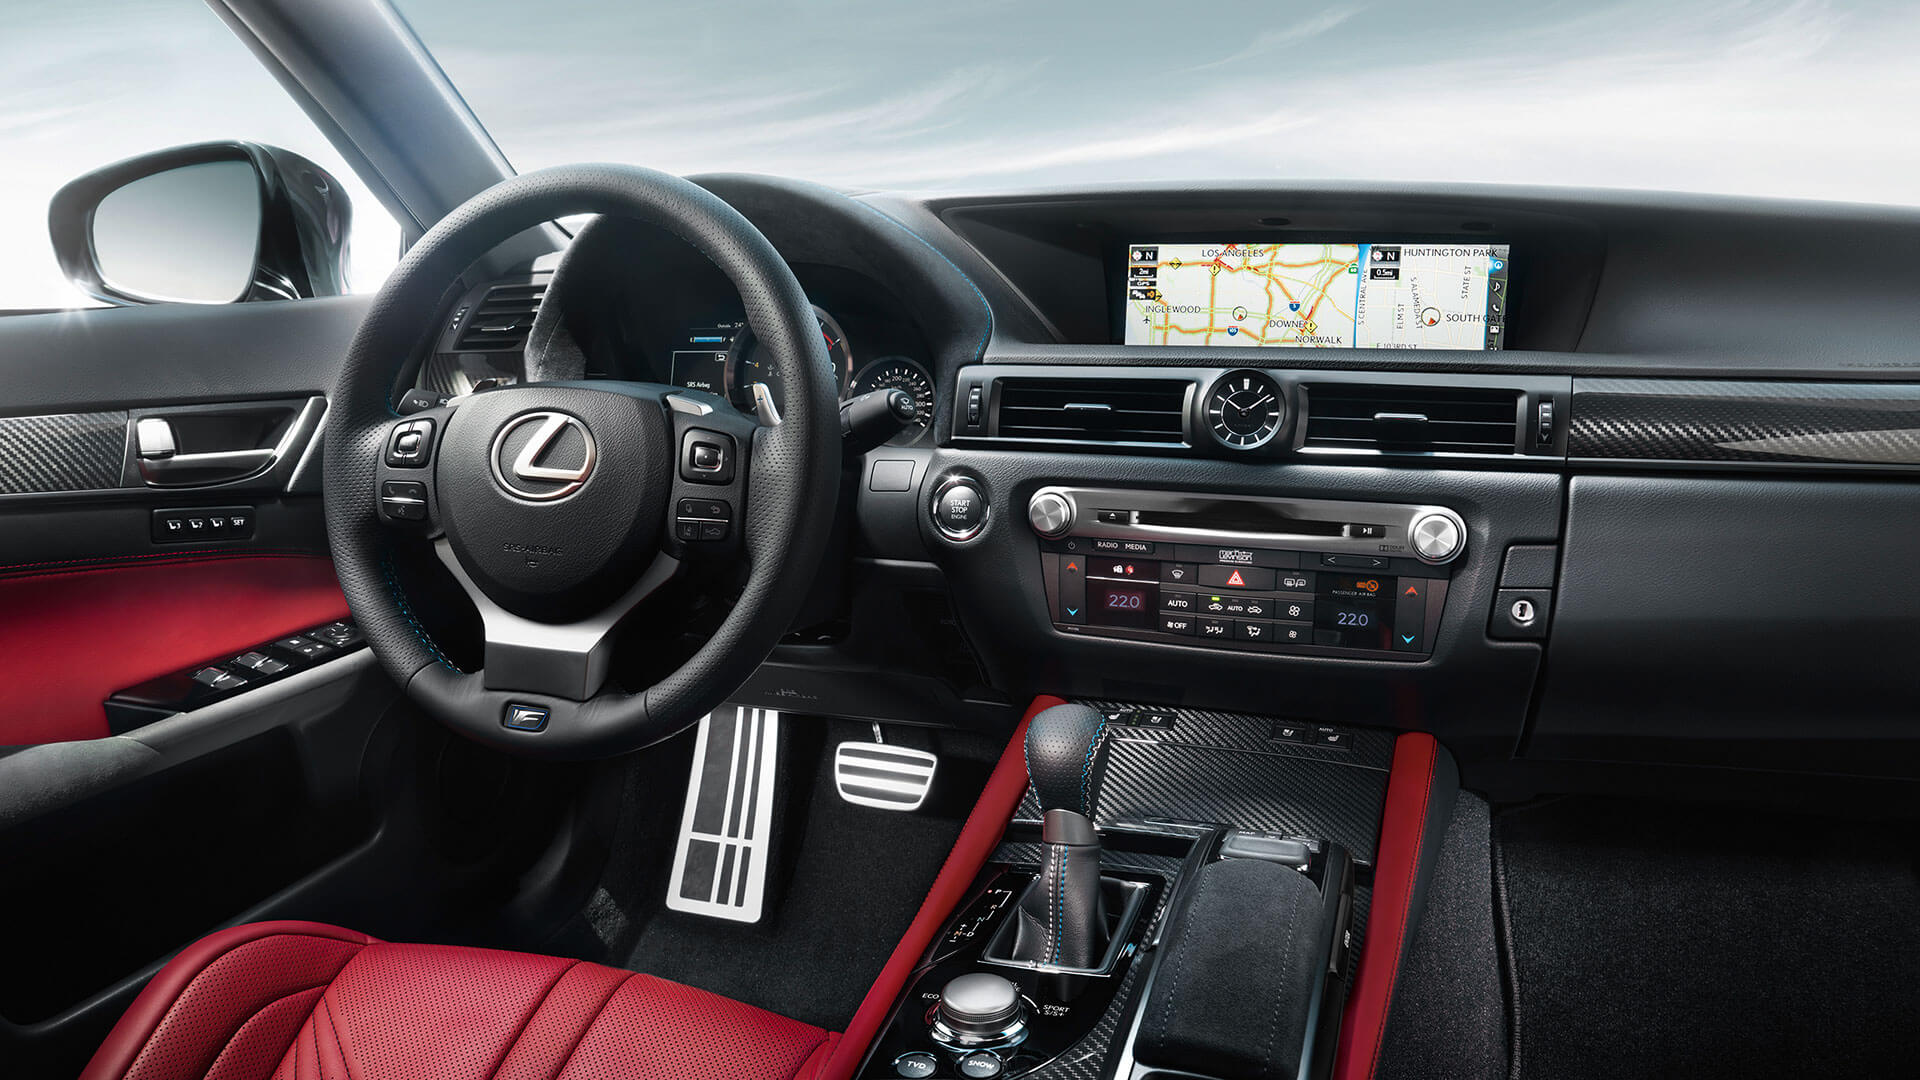 2017 lexus gs f gallery 004 interior